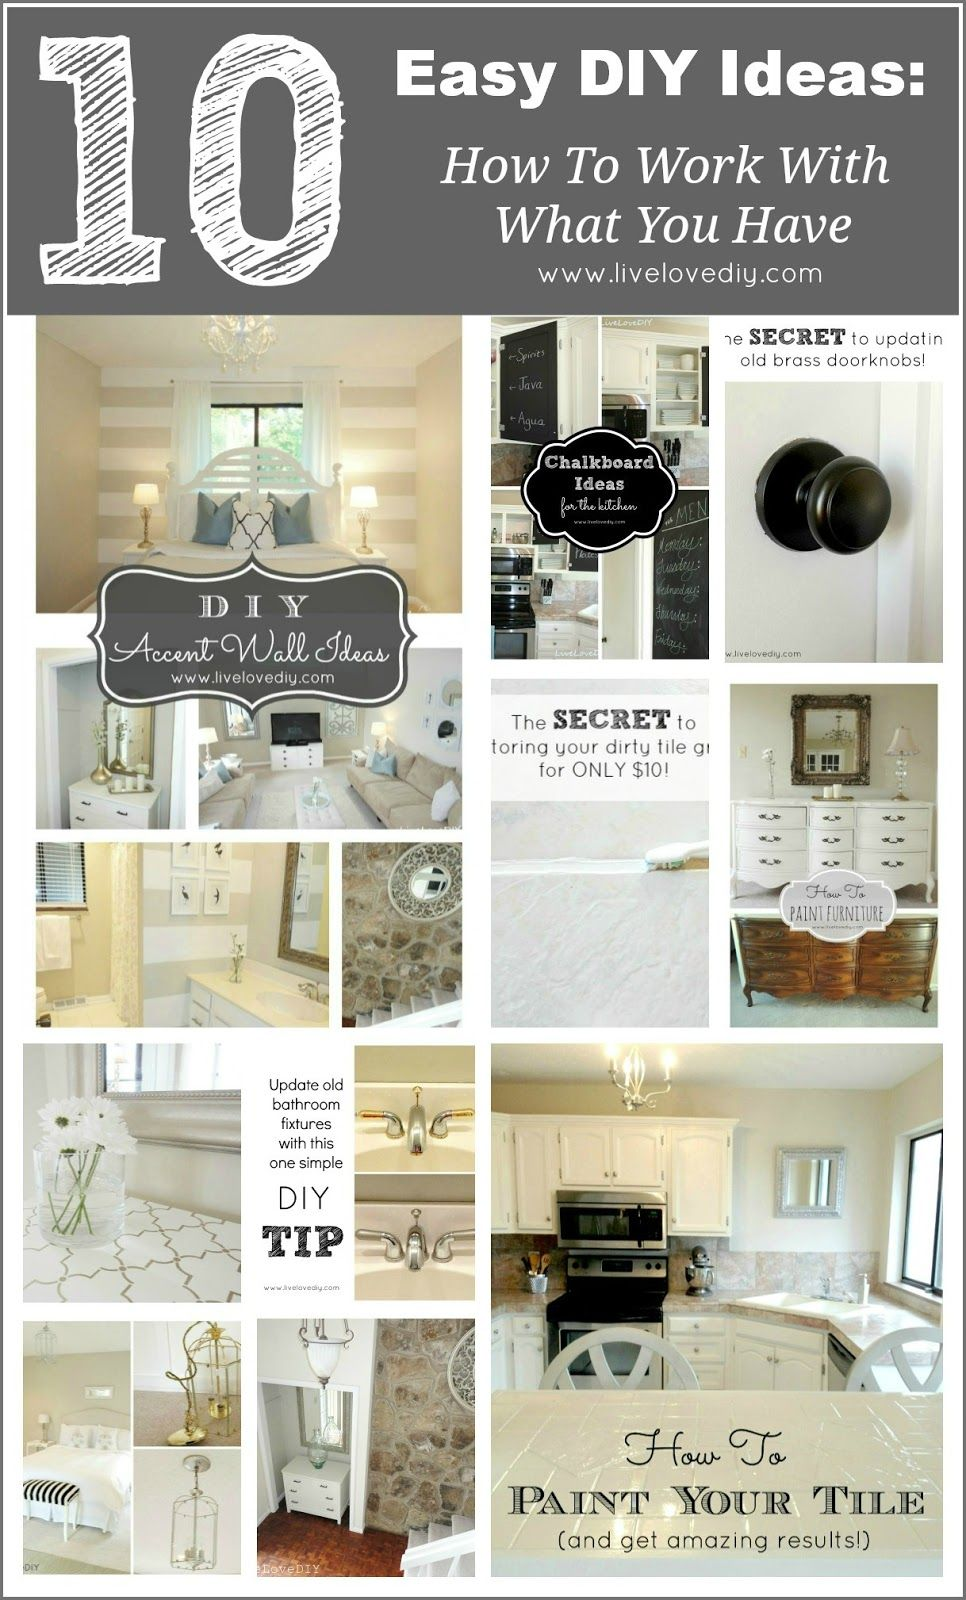 10 DIY Home Improvement Ideas: How To Make The Most of What You ...